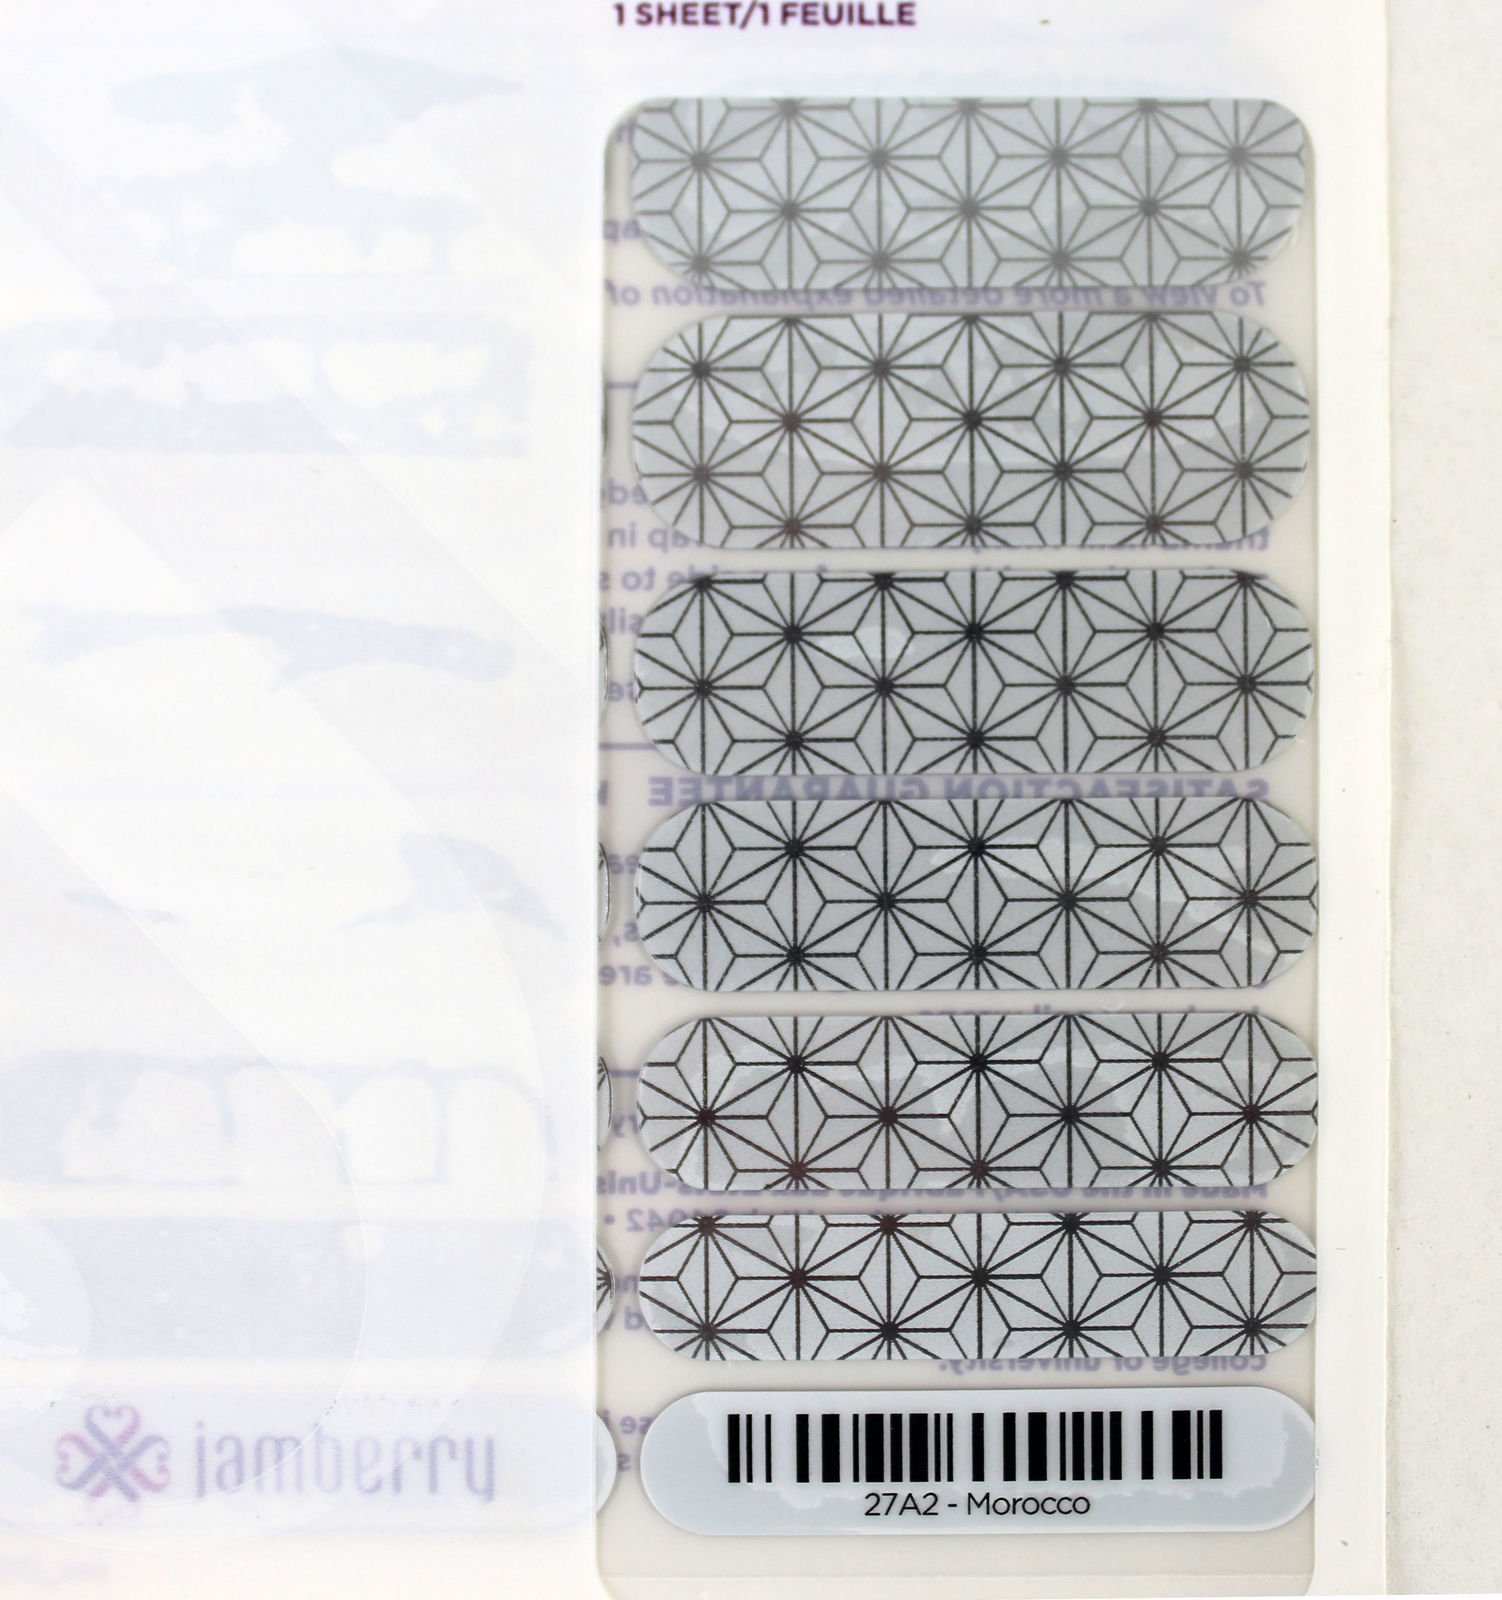 Jamberry Morocco 27A2 Nail Wrap (Full Sheet) 18 pieces 2 of each size